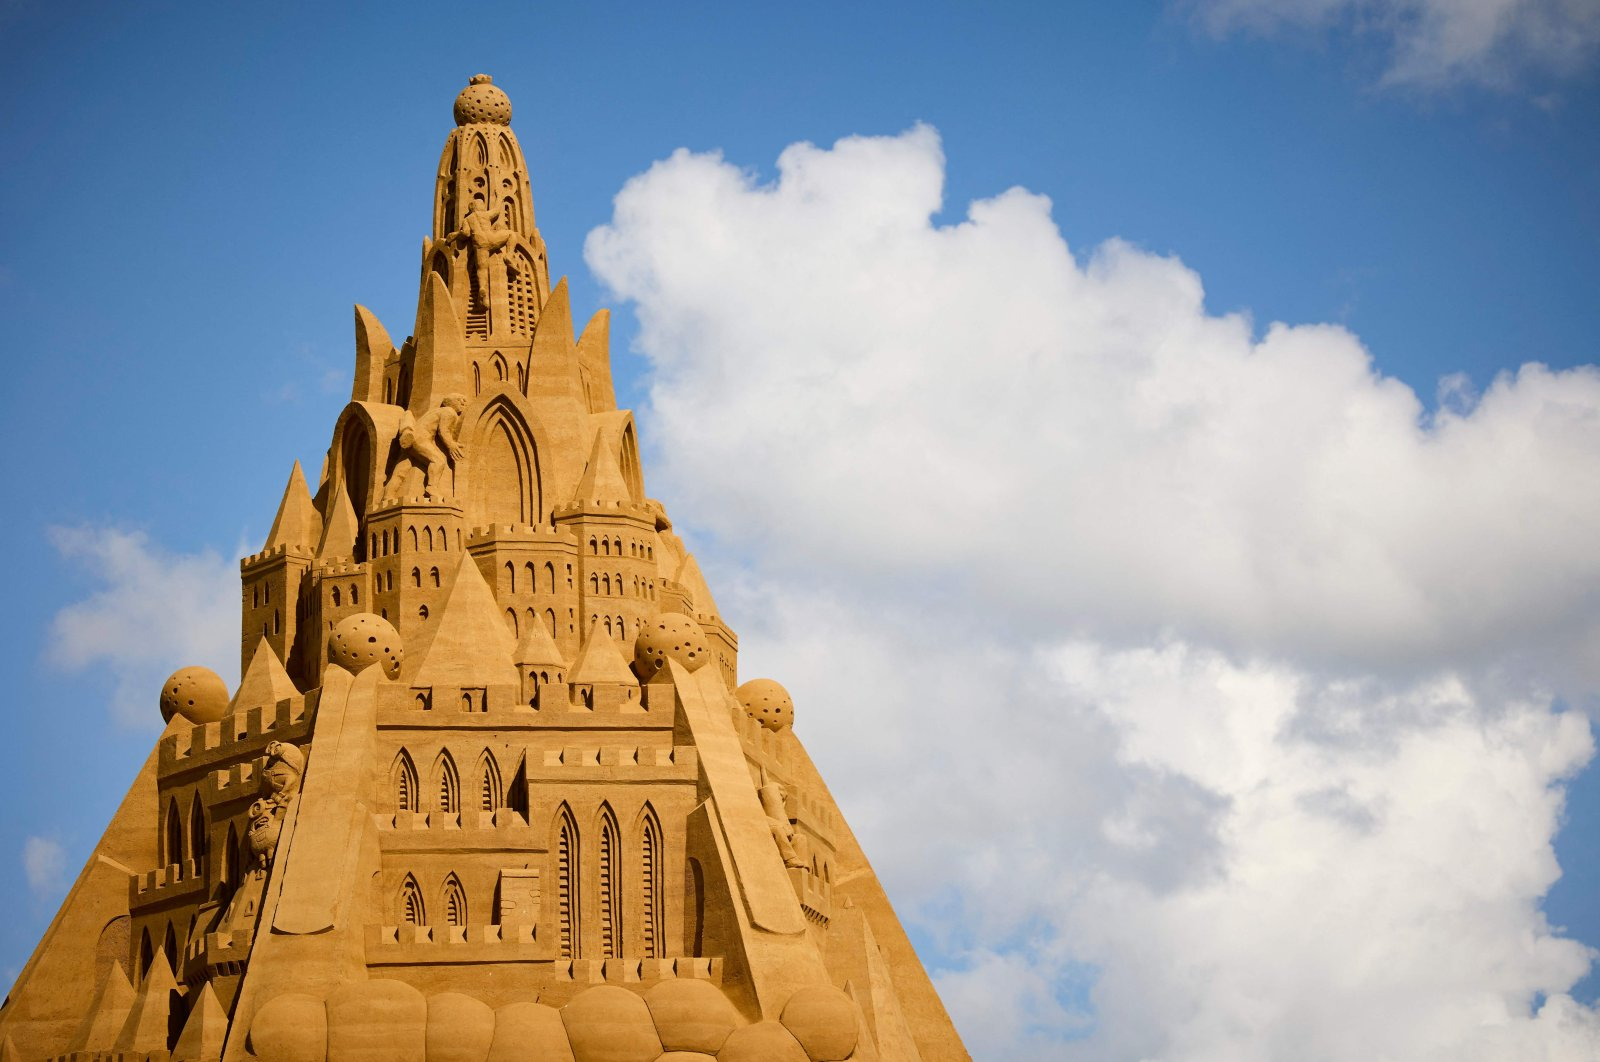 The world's tallest sand sculpture is under construction in Blokhus, Denmark, July 7, 2021. (AFP Photo)